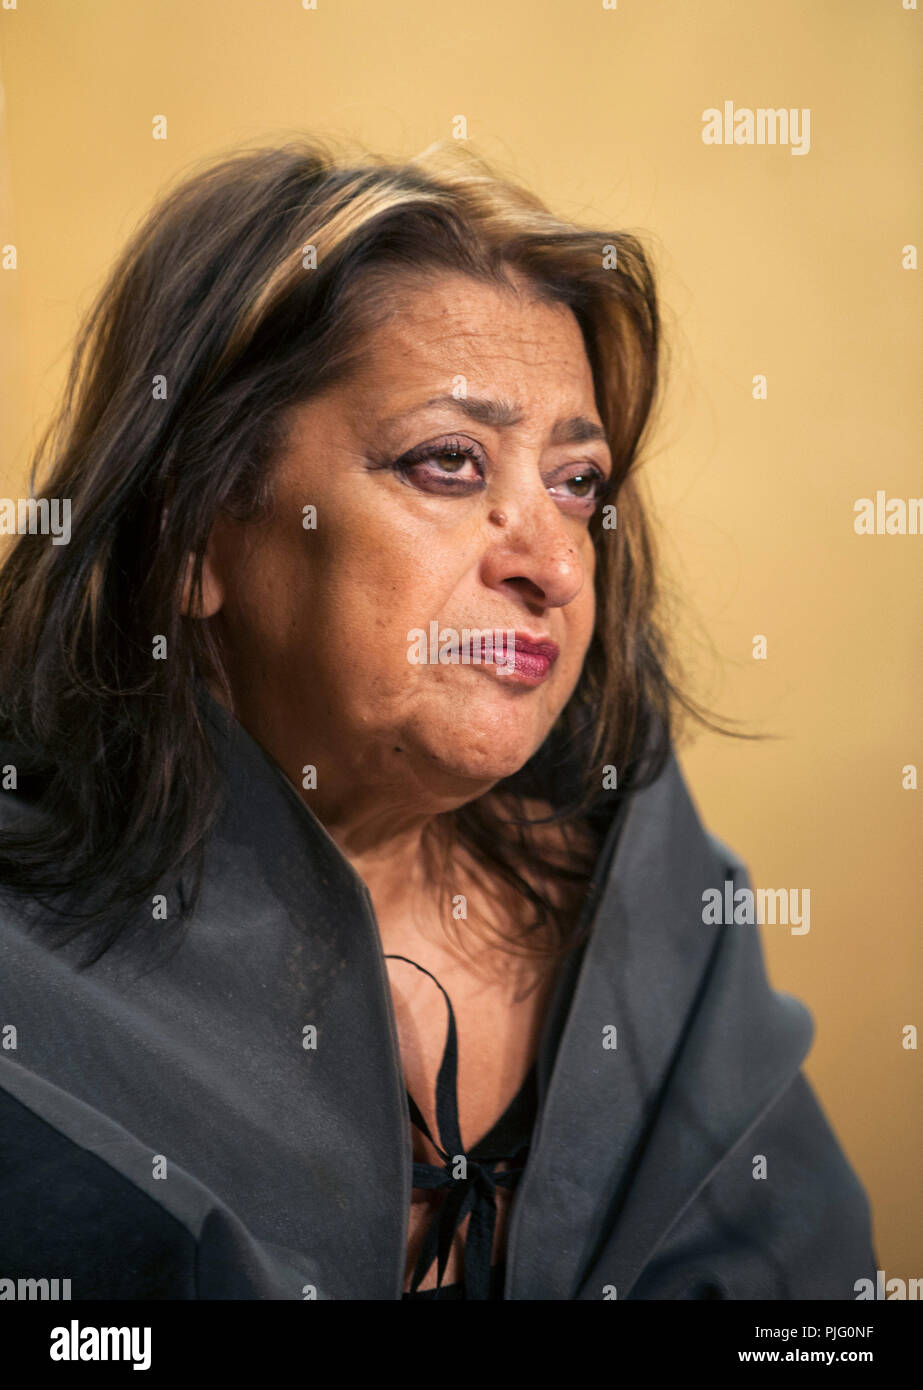 British architect Zaha Hadid speaks during a media event formally announcing the winners of the Praemium Imperiale, a global arts prize that is awarde Stock Photo